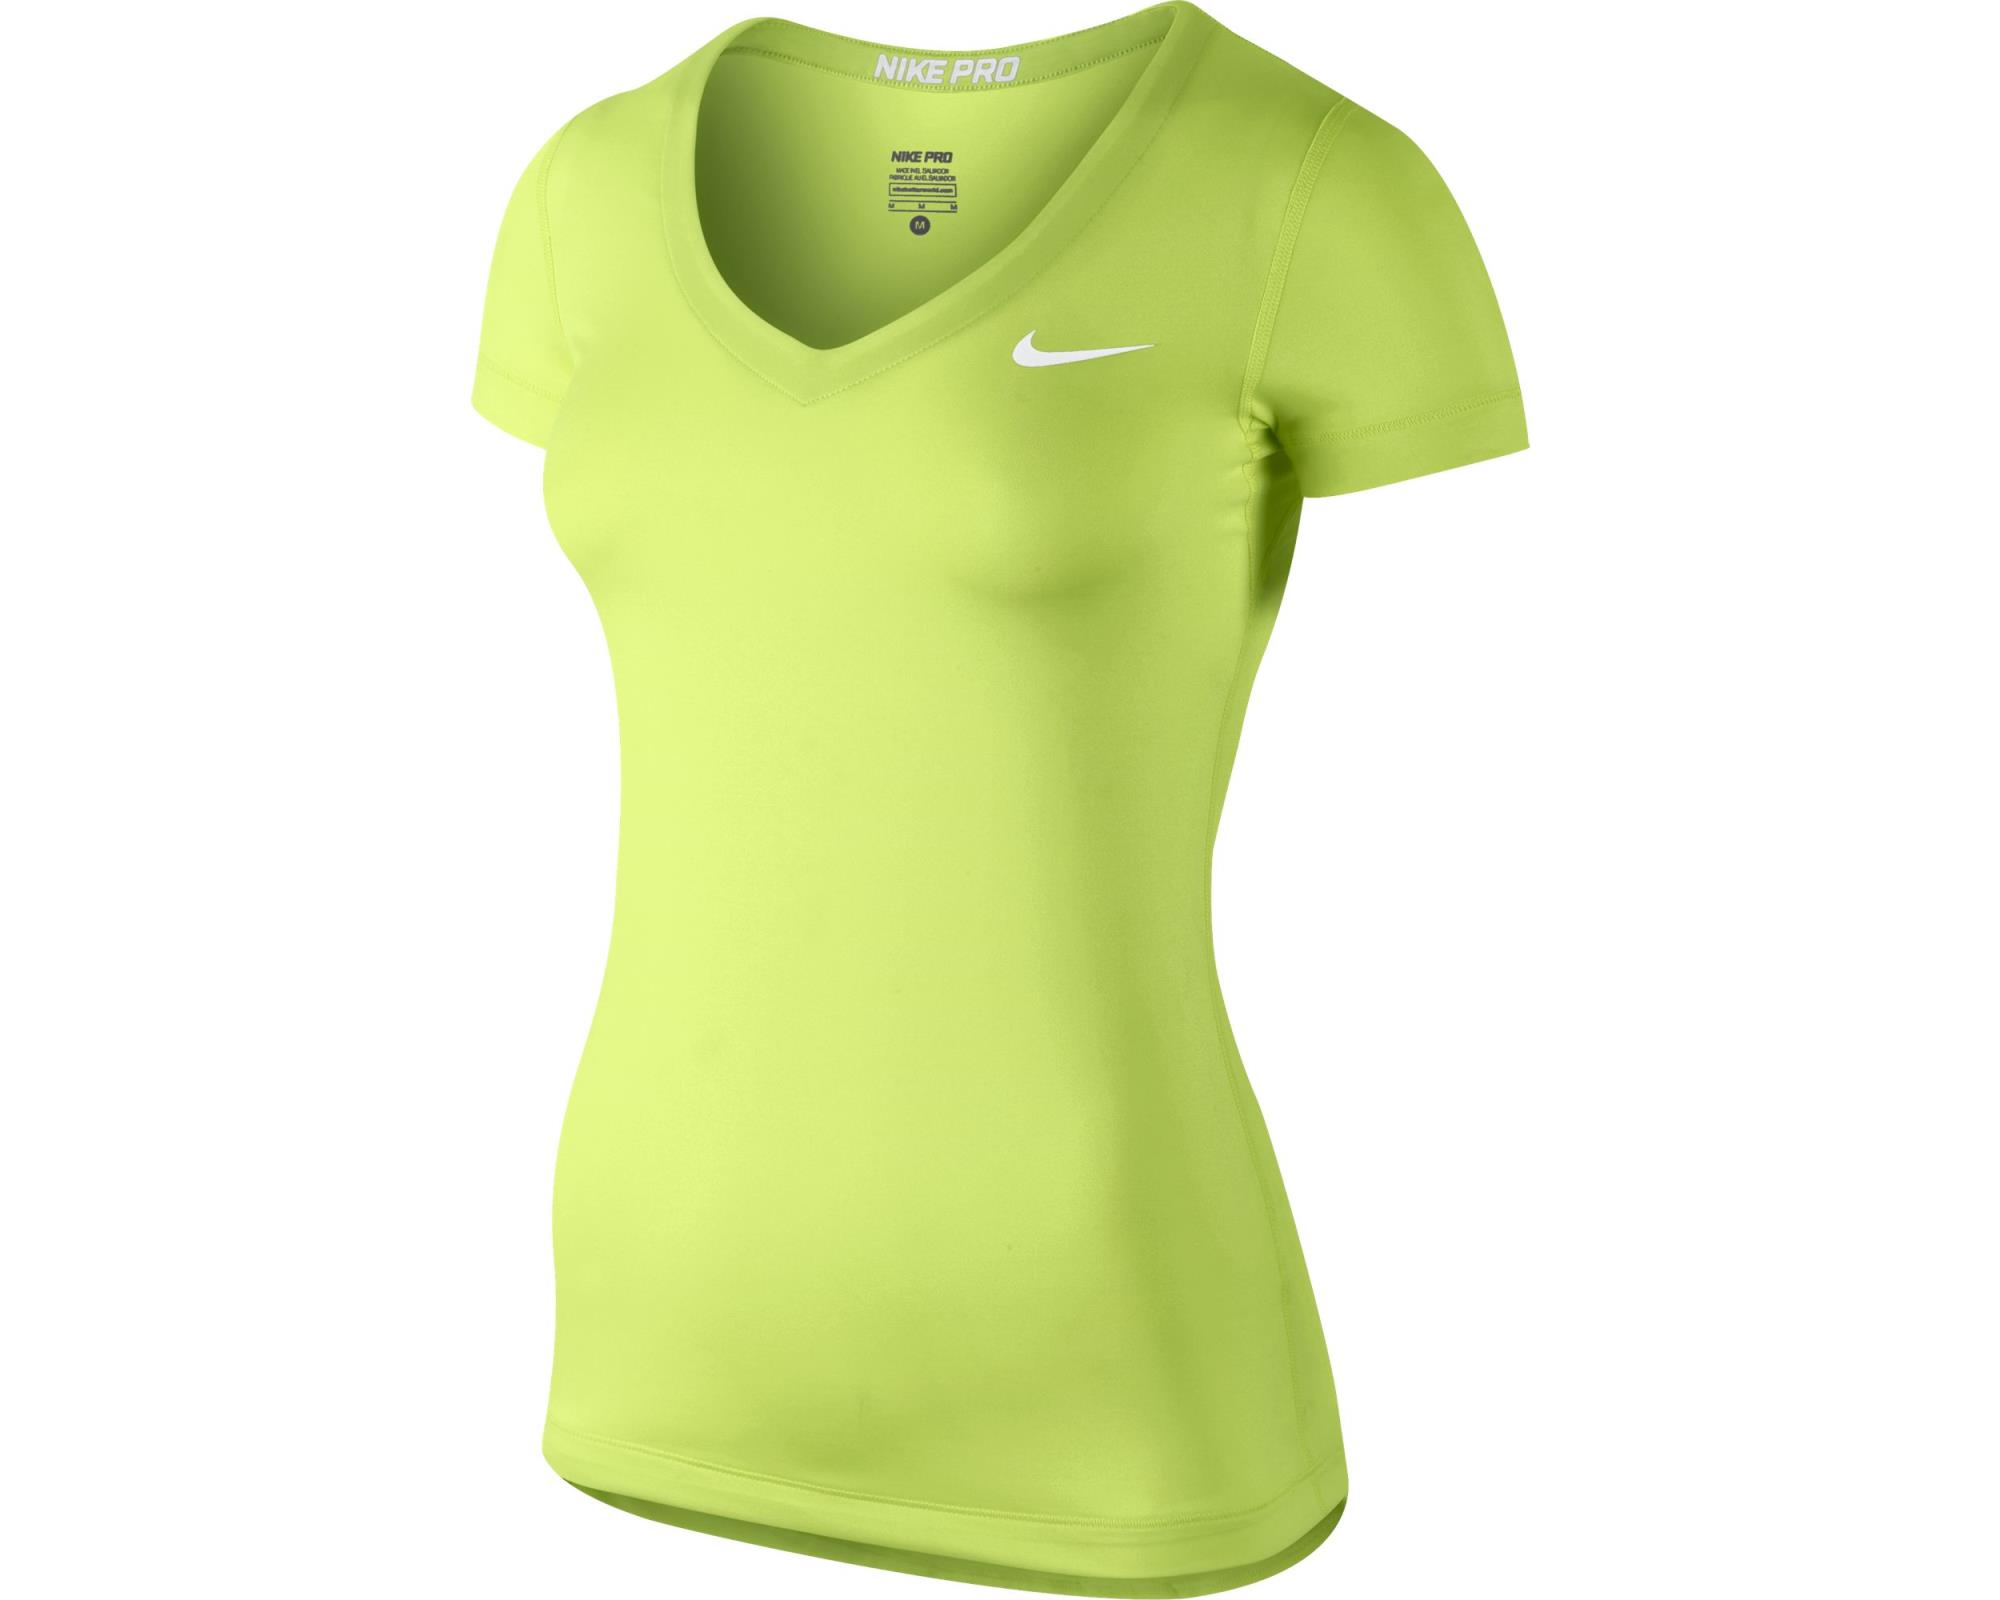 Nike Spring Pro SS Top Giallo Fluo Donna 1